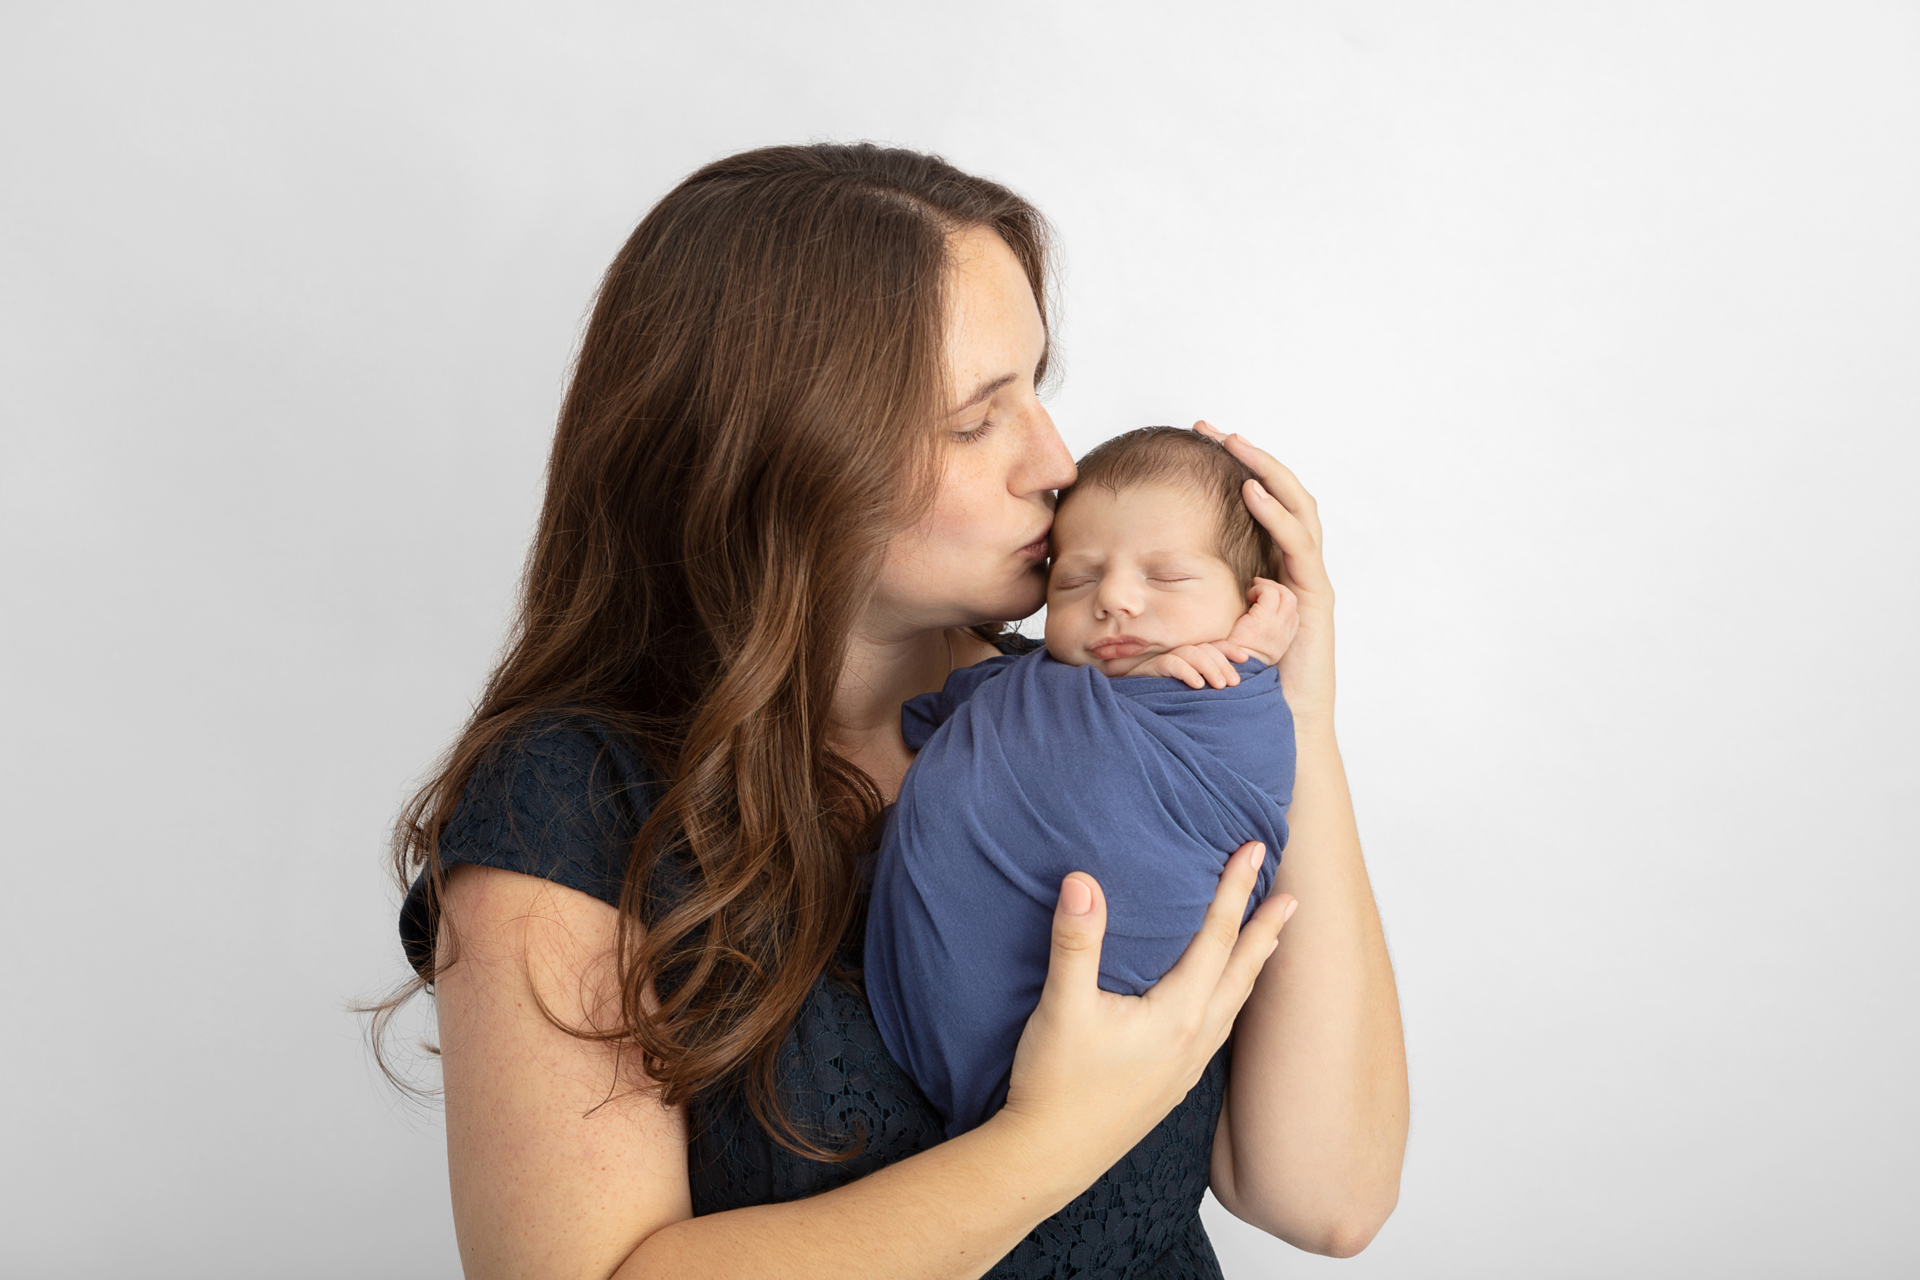 mom with long auburn hair wearing a navy top holding her newborn baby kissing them